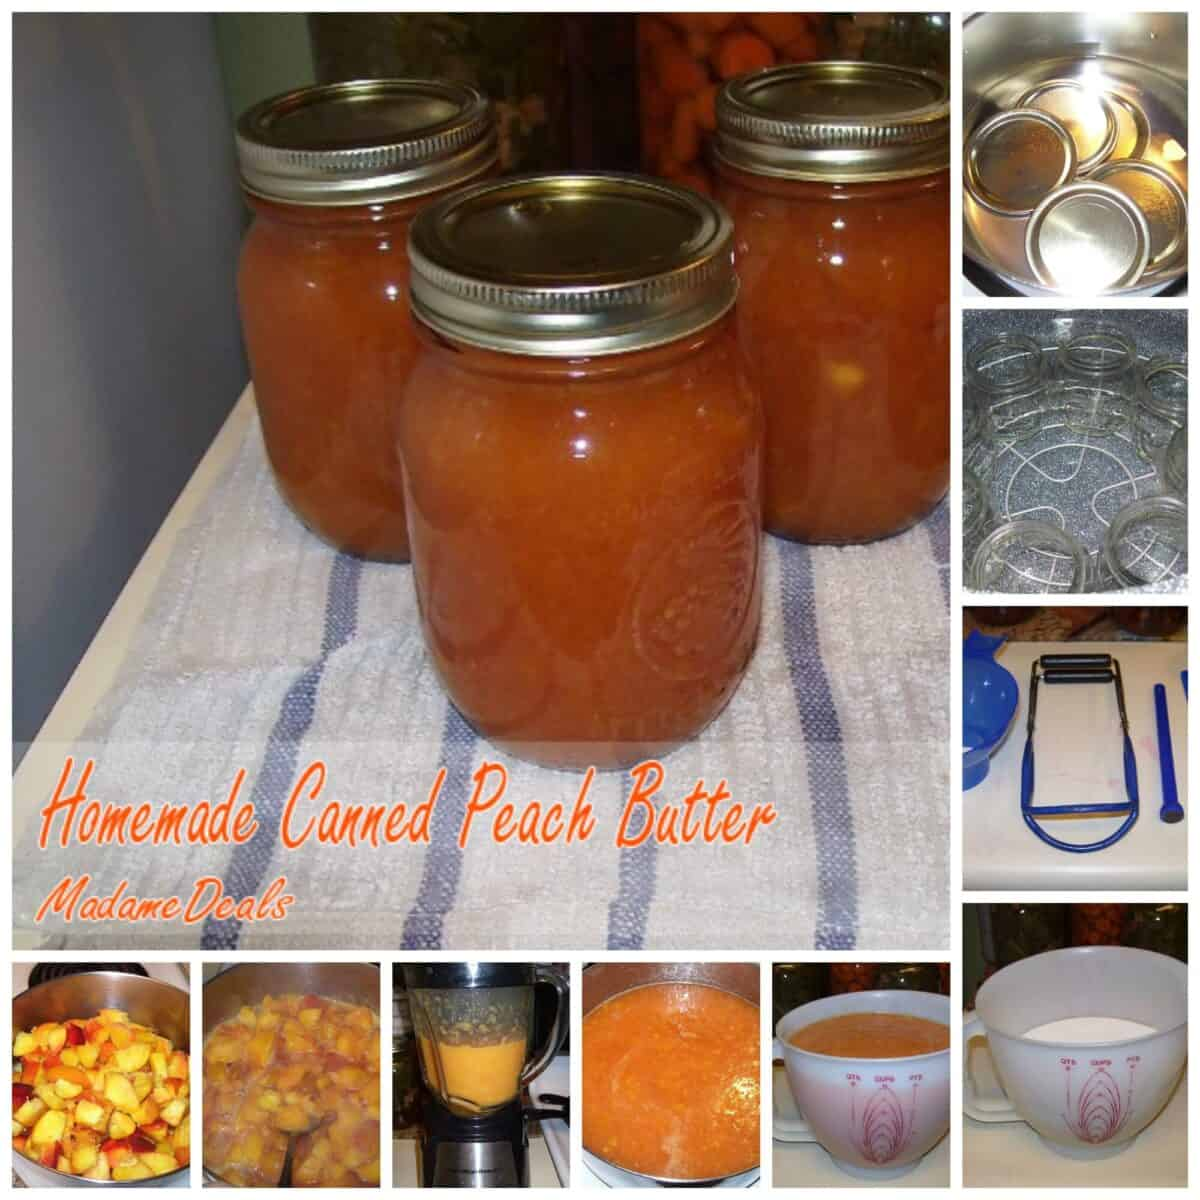 Homemade Canned Peach Butter - Real Advice Gal